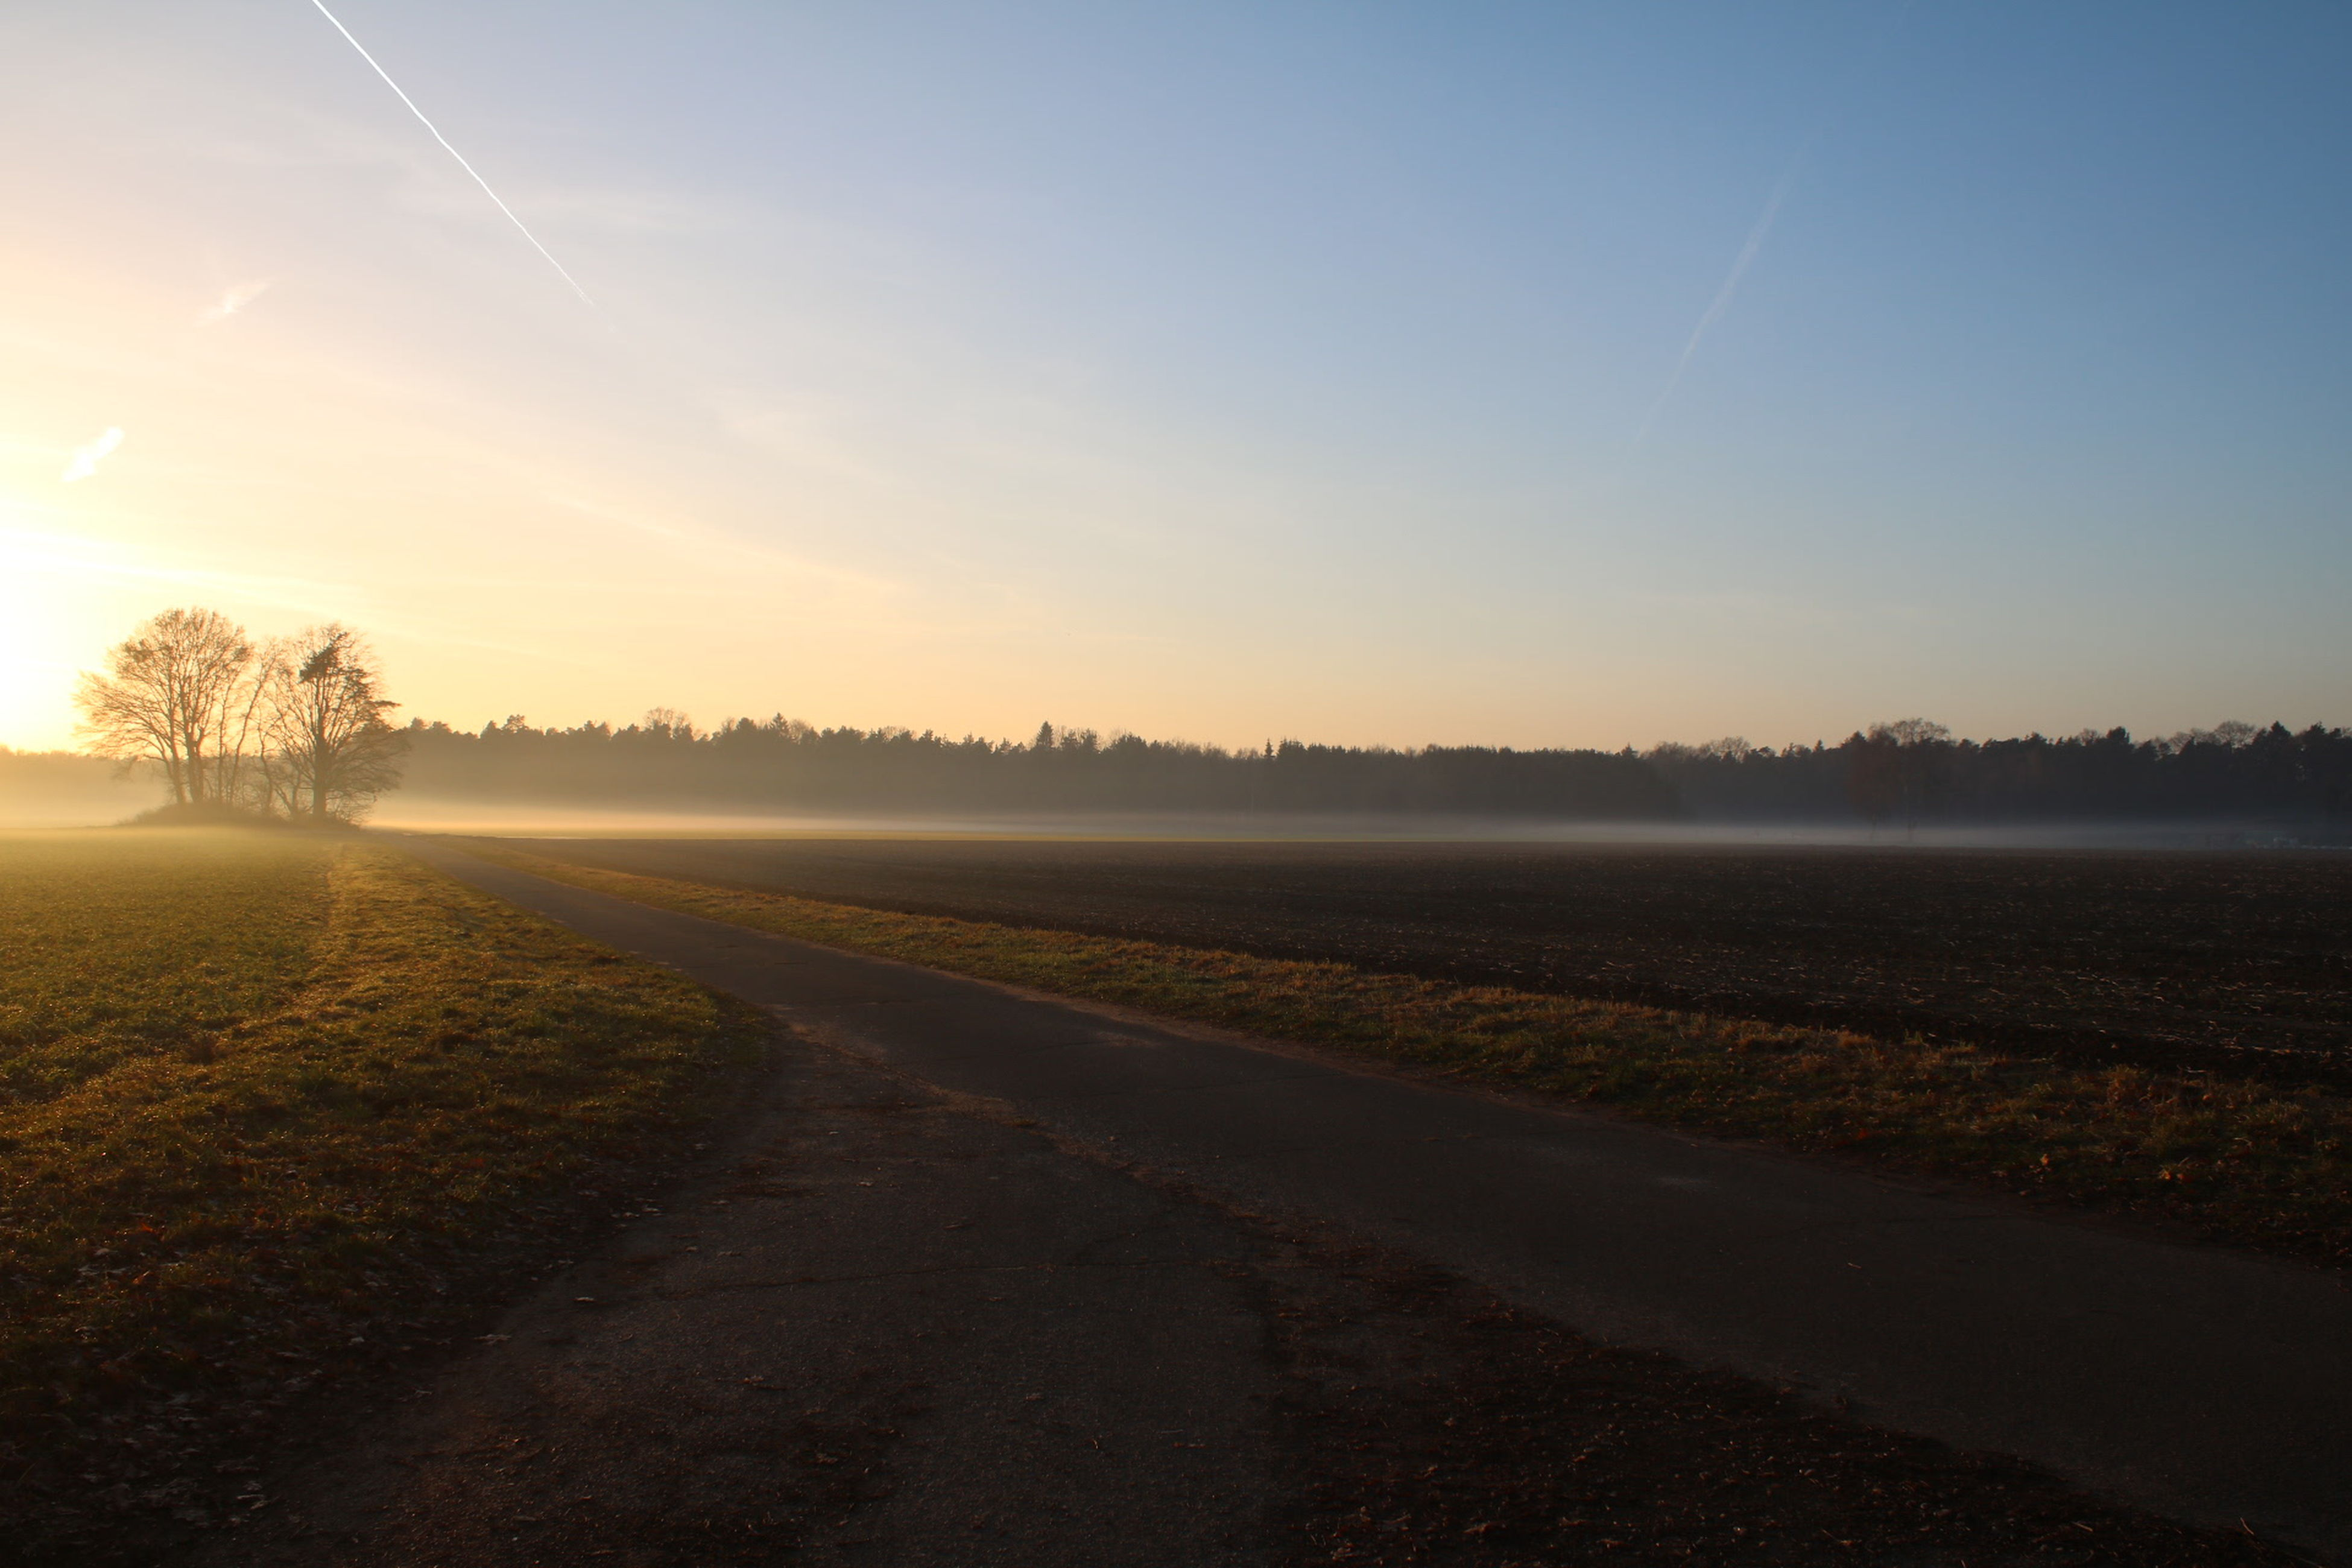 sunset, road, sky, nature, fog, scenics, outdoors, no people, beauty in nature, day